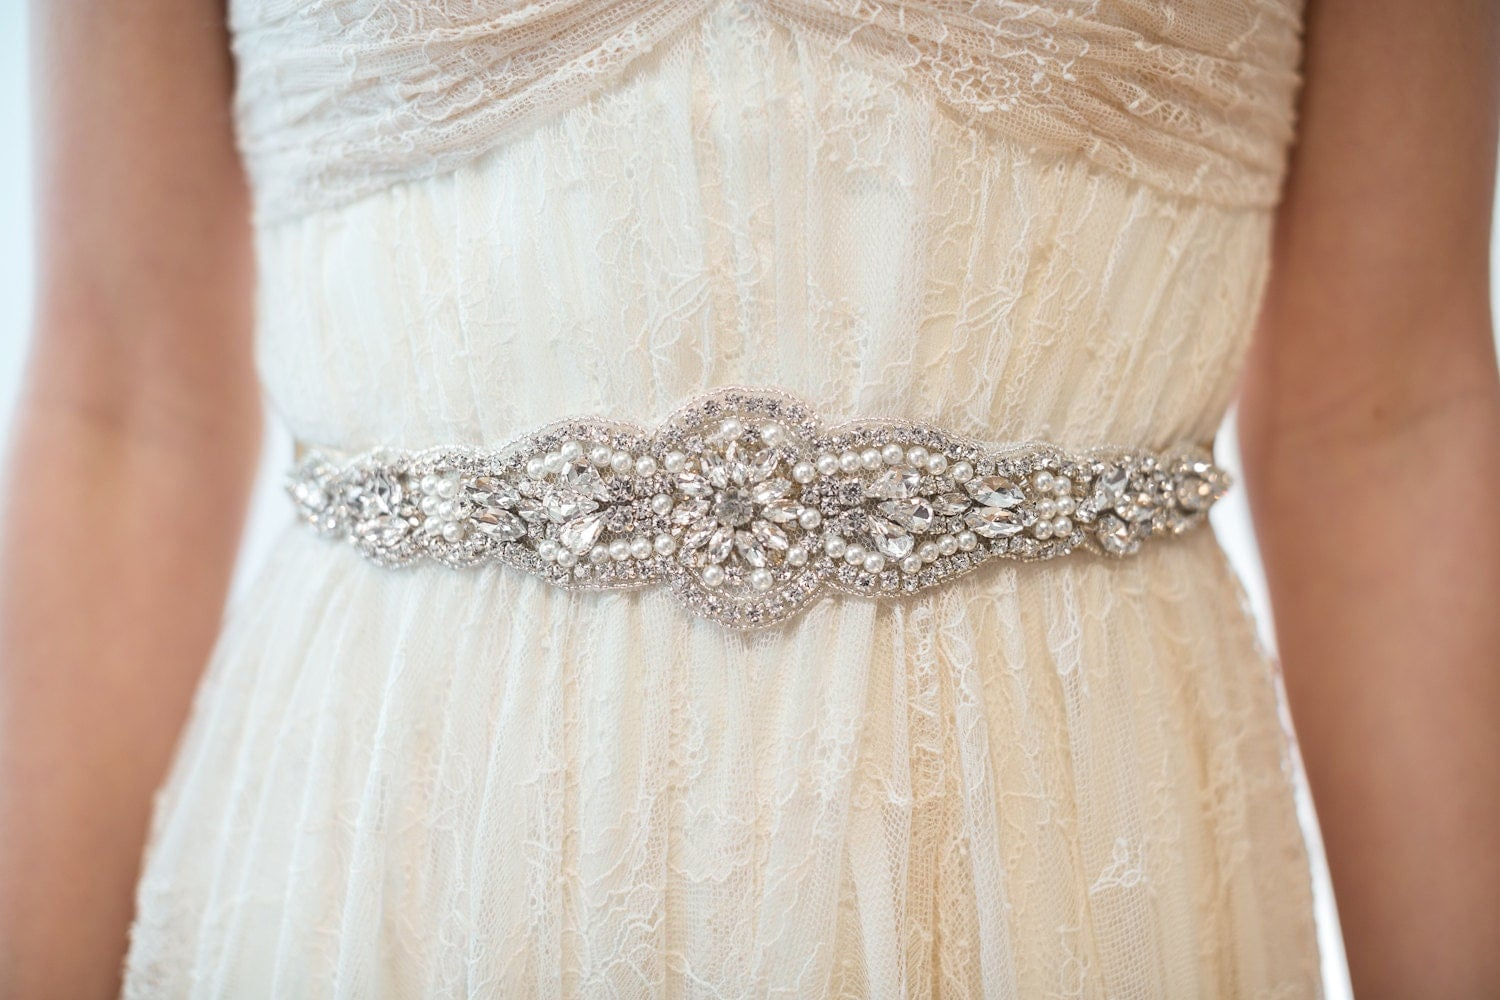 Bridal Gown Sash Wedding Dress Sash Rhinestone Beaded Sash